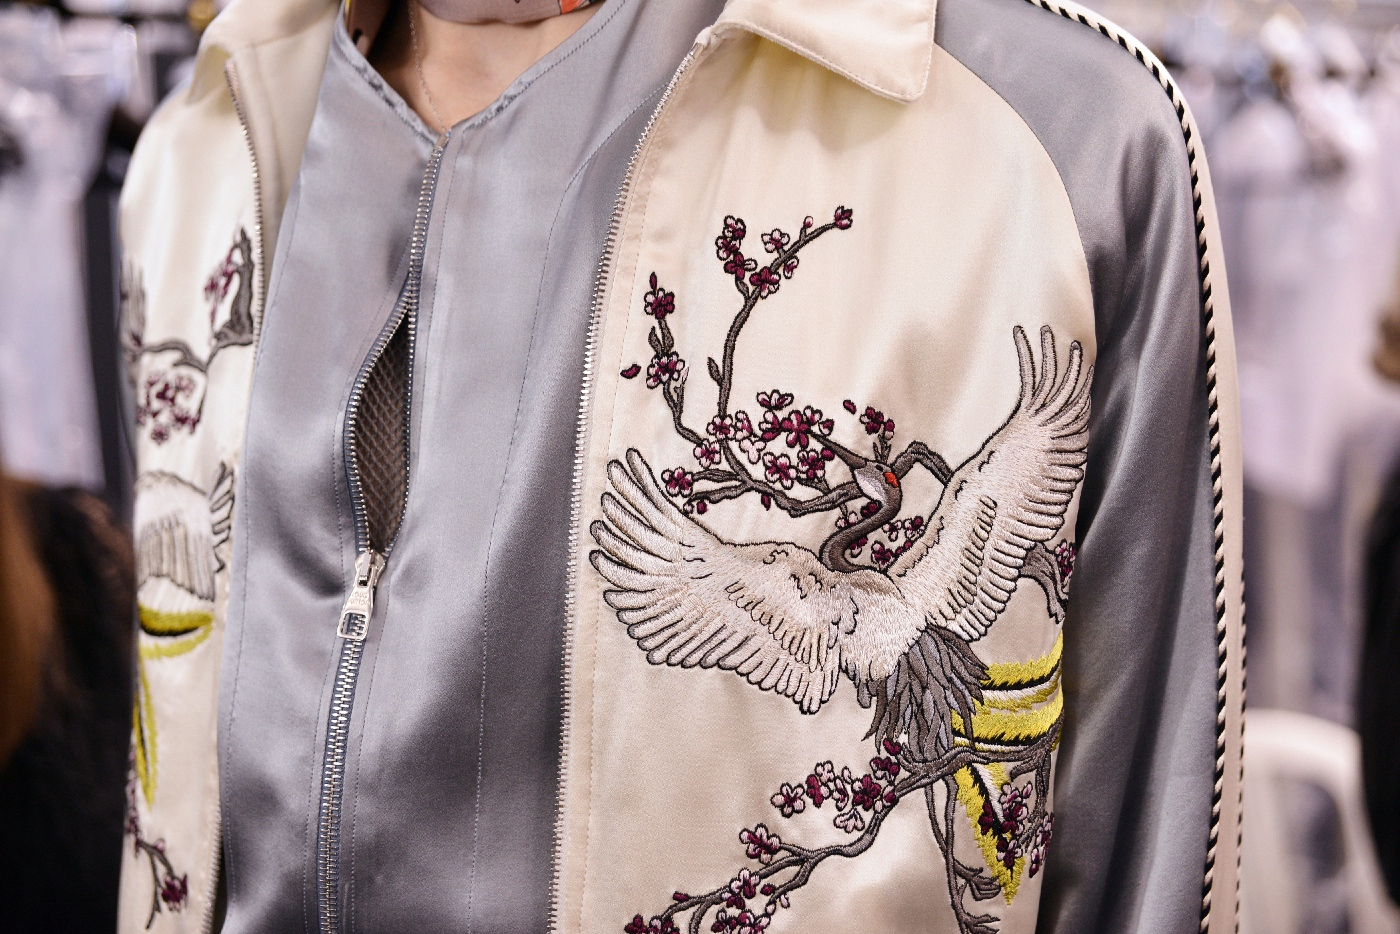 Backstage at the Louis Vuitton Menswear Spring Summer 2016 Show 15